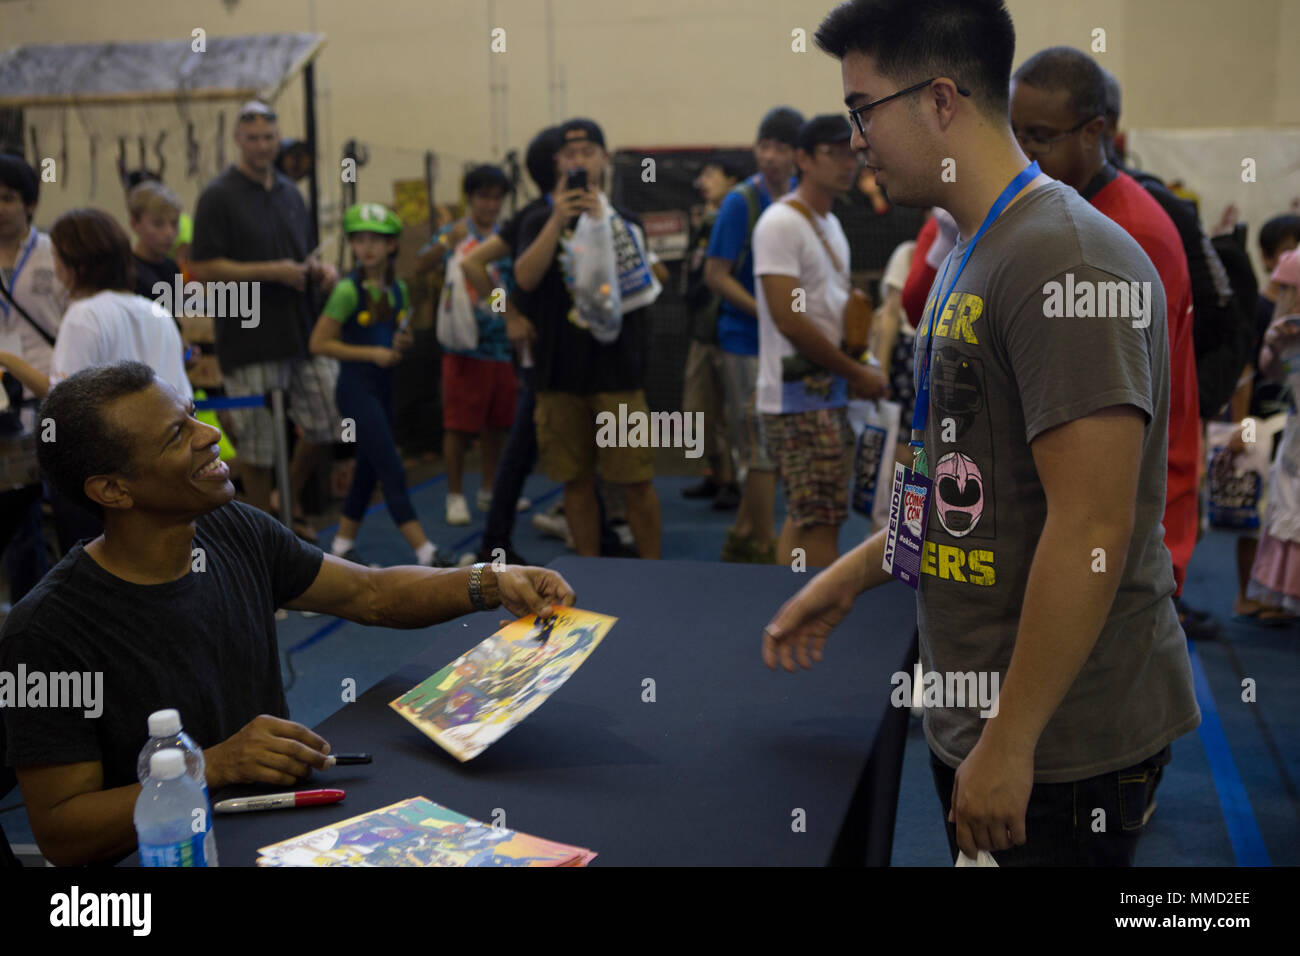 Camp Foster Okinawa Japan Phil Lamarr Autographs A Poster During